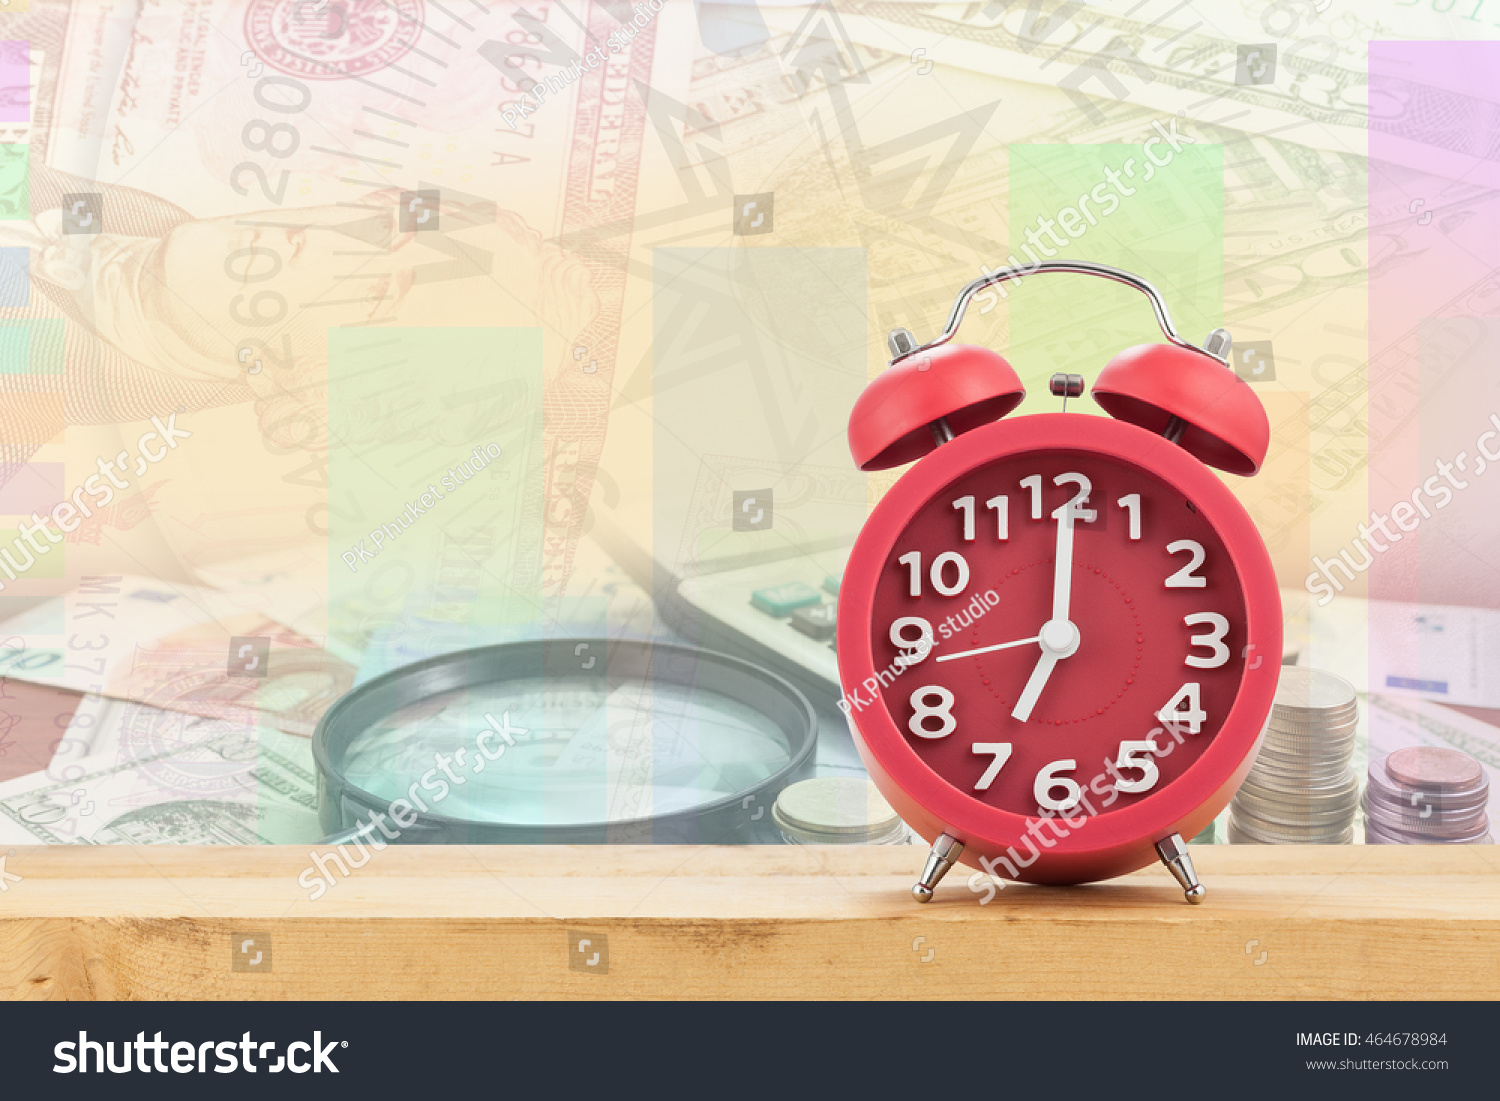 Red old fashioned alarm clock on Calculator with coin and Magnifying glass on money banknotes  #464678984